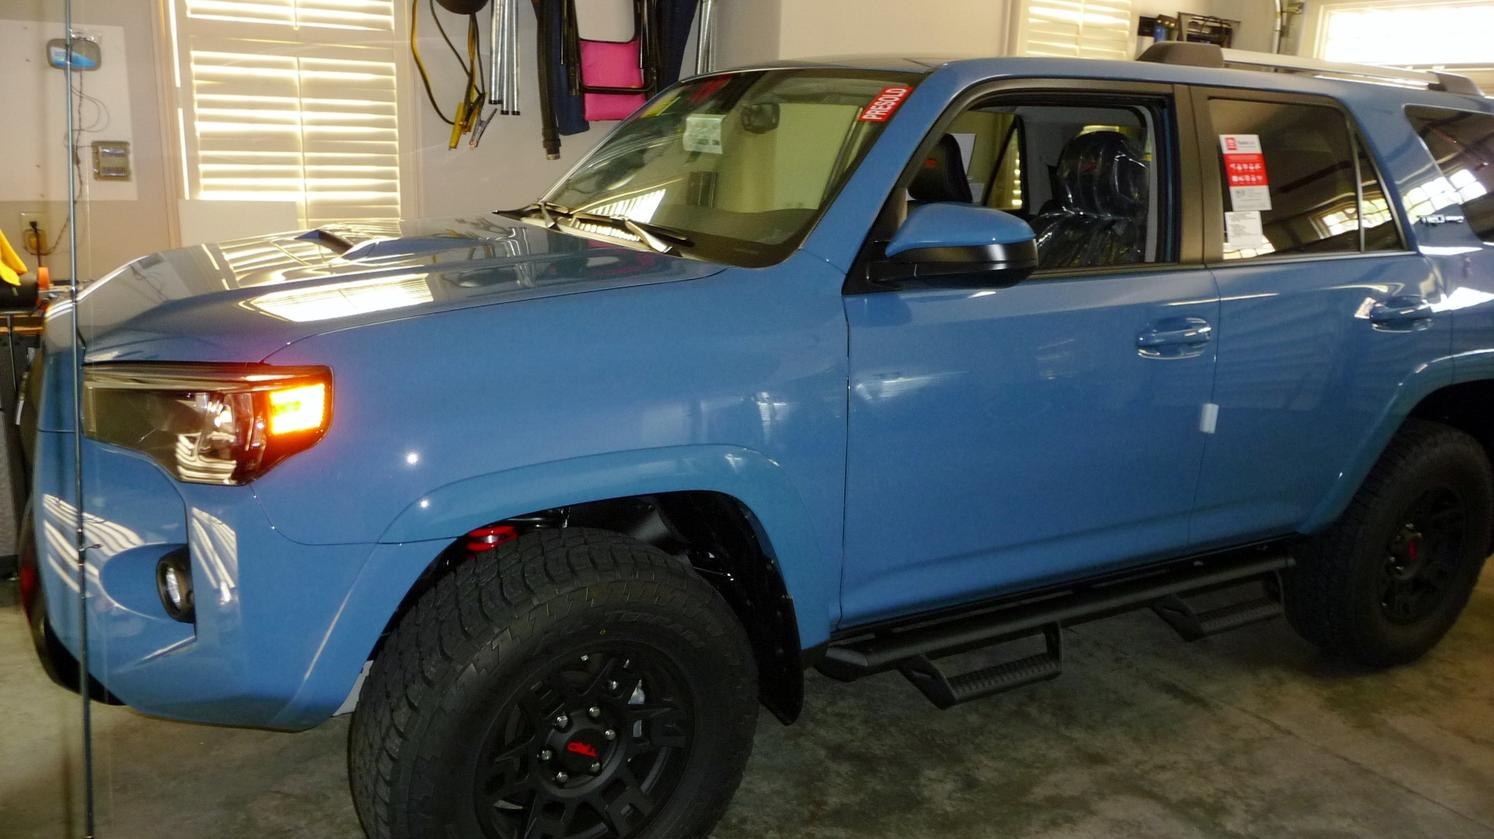 cavalry blue 2018 trd pro sighted page 17 toyota 4runner forum largest 4runner forum. Black Bedroom Furniture Sets. Home Design Ideas